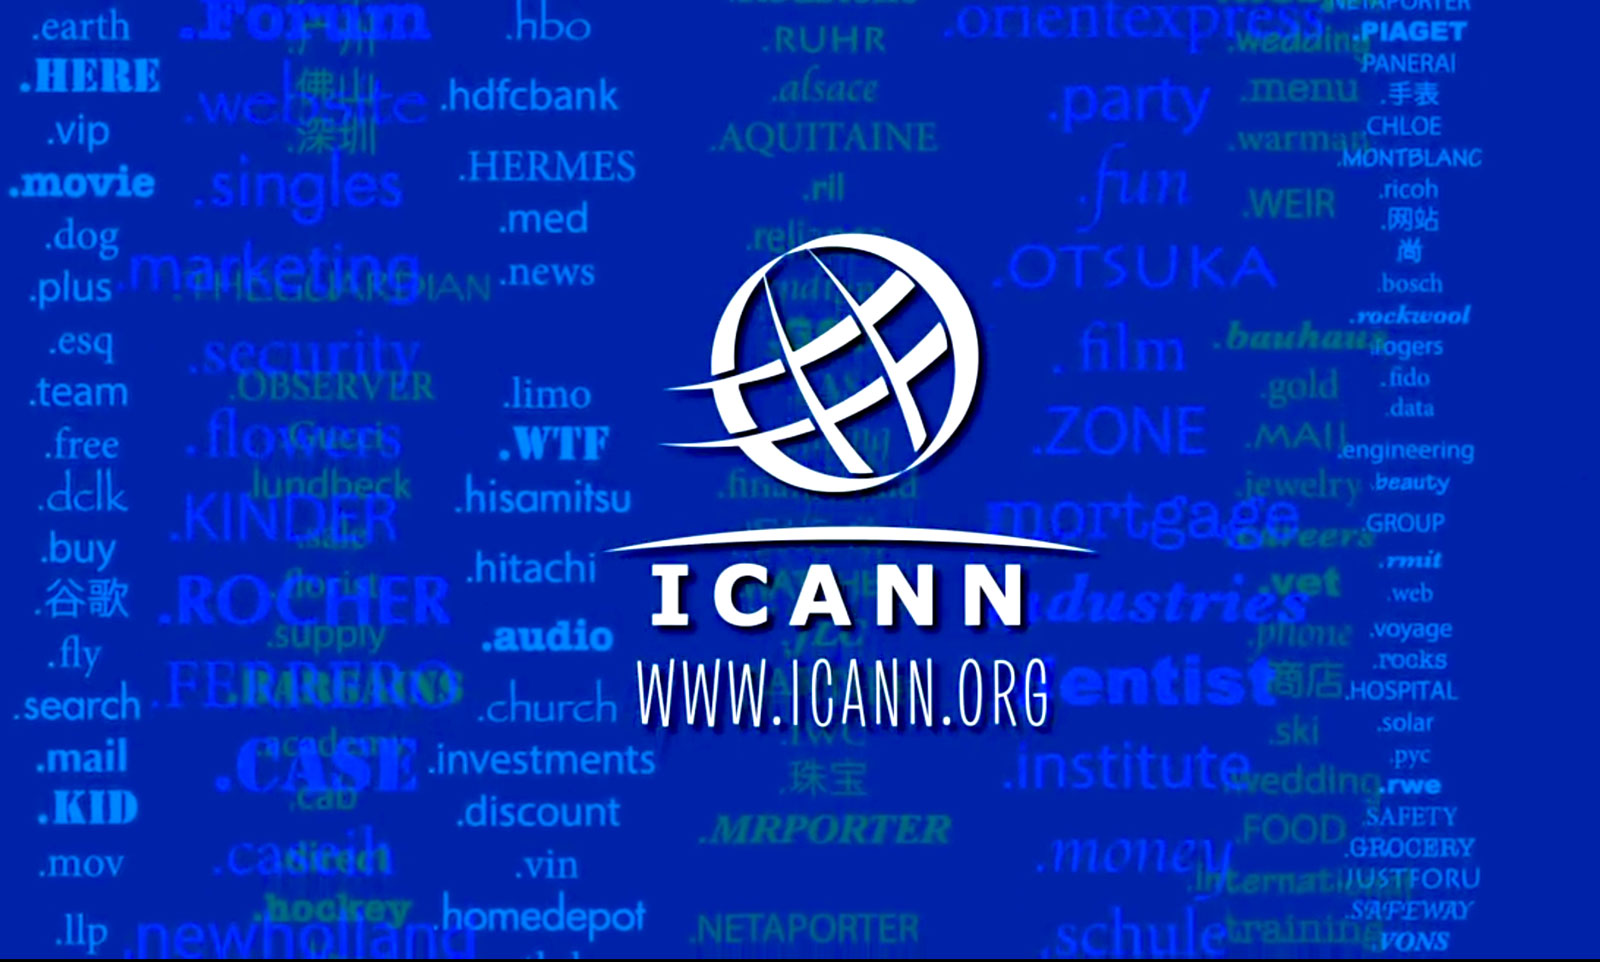 ICANN, which oversees many fundamental Internet issues, is letting organizations add hundreds of top-level domains like .nyc, .dad, .network and .navy to the Net.